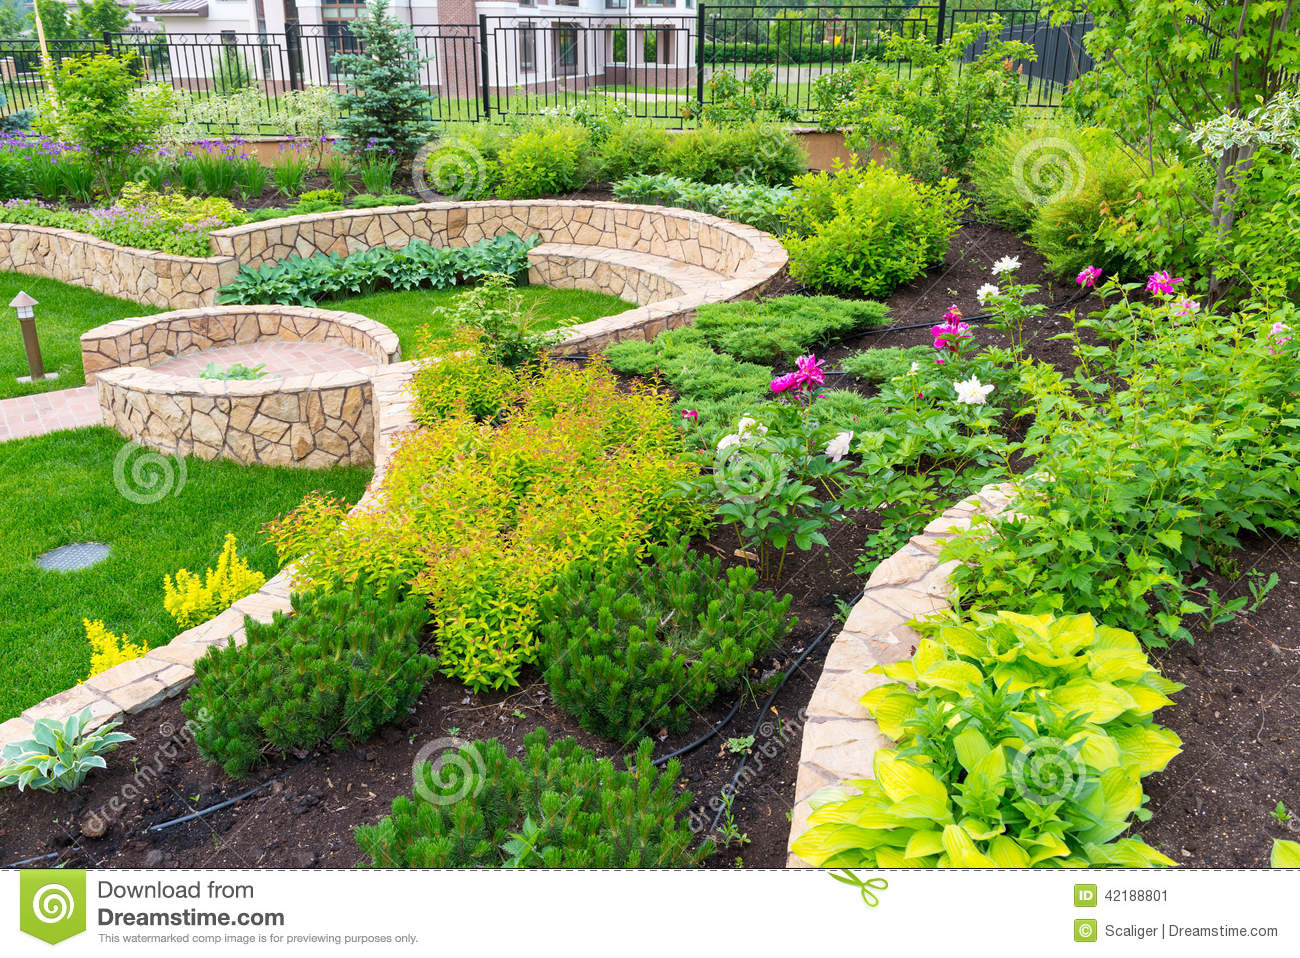 Natural landscaping in home garden stock image image for Home garden pictures